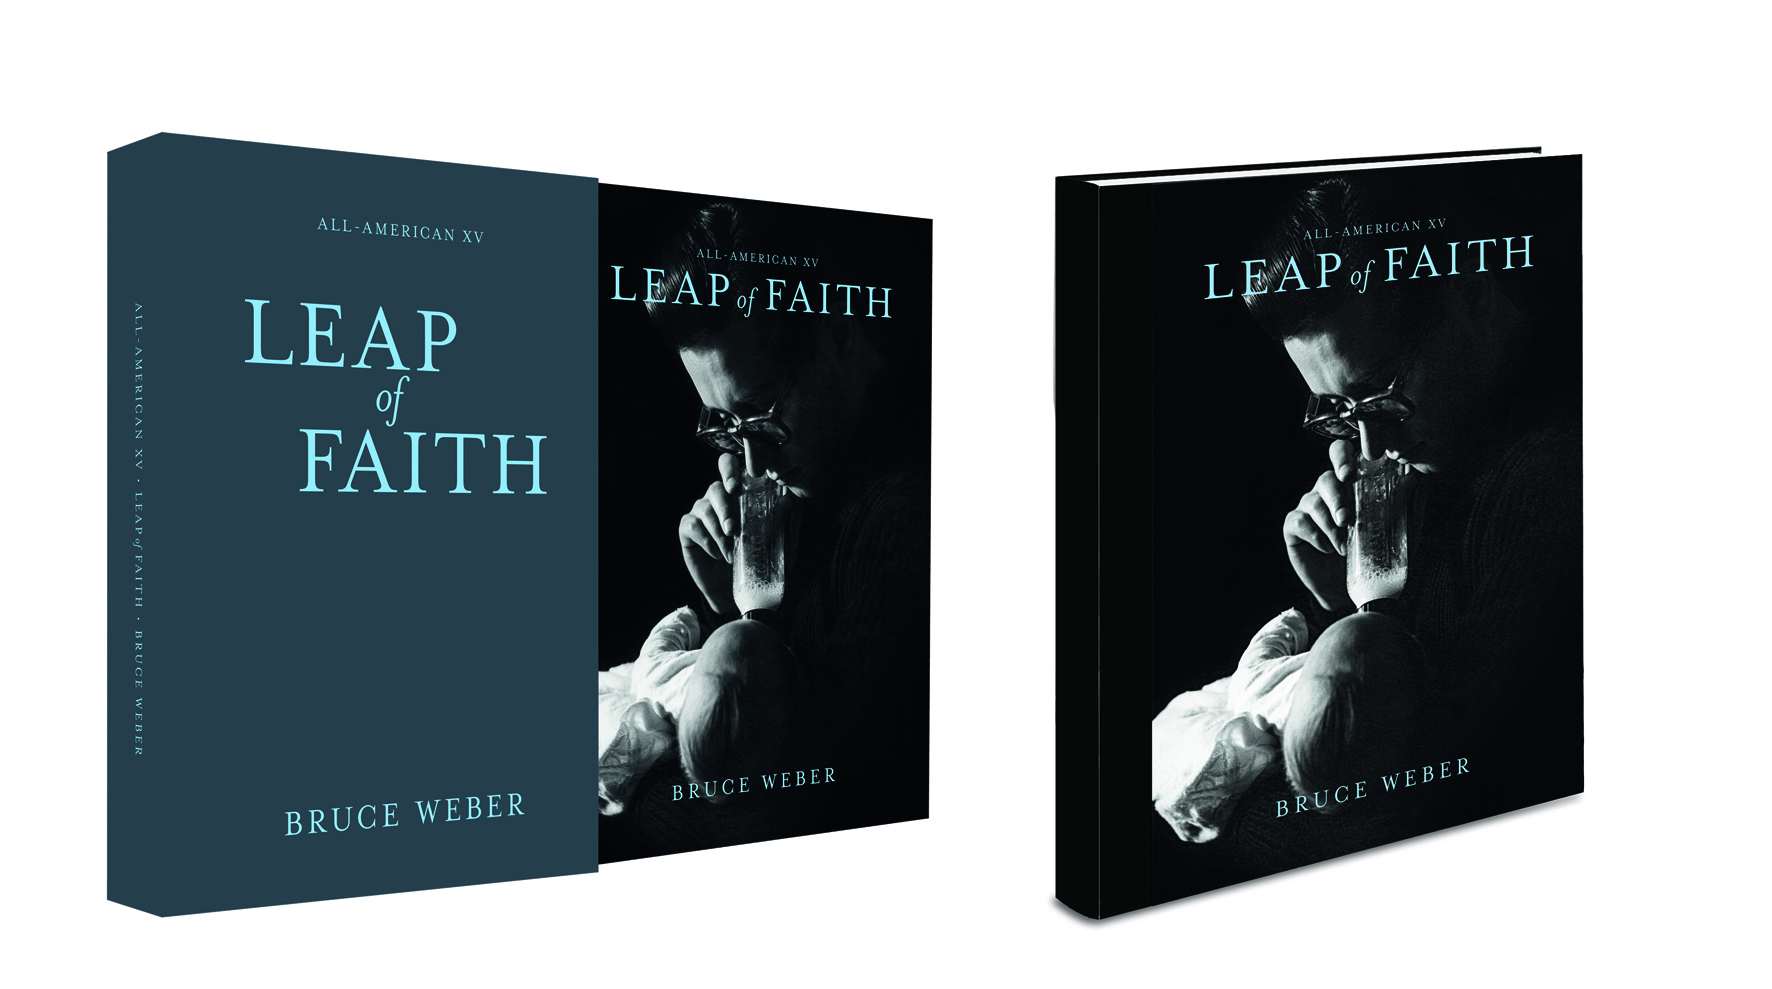 © All-American Volume XV - Leap of Faith by Bruce Weber, to be published by teNeues in October 2015, € 98, www.teneues.com. Photo © Peter Basch. From the archives of Basch LLC. Courtesy of Staley-Wise Gallery.